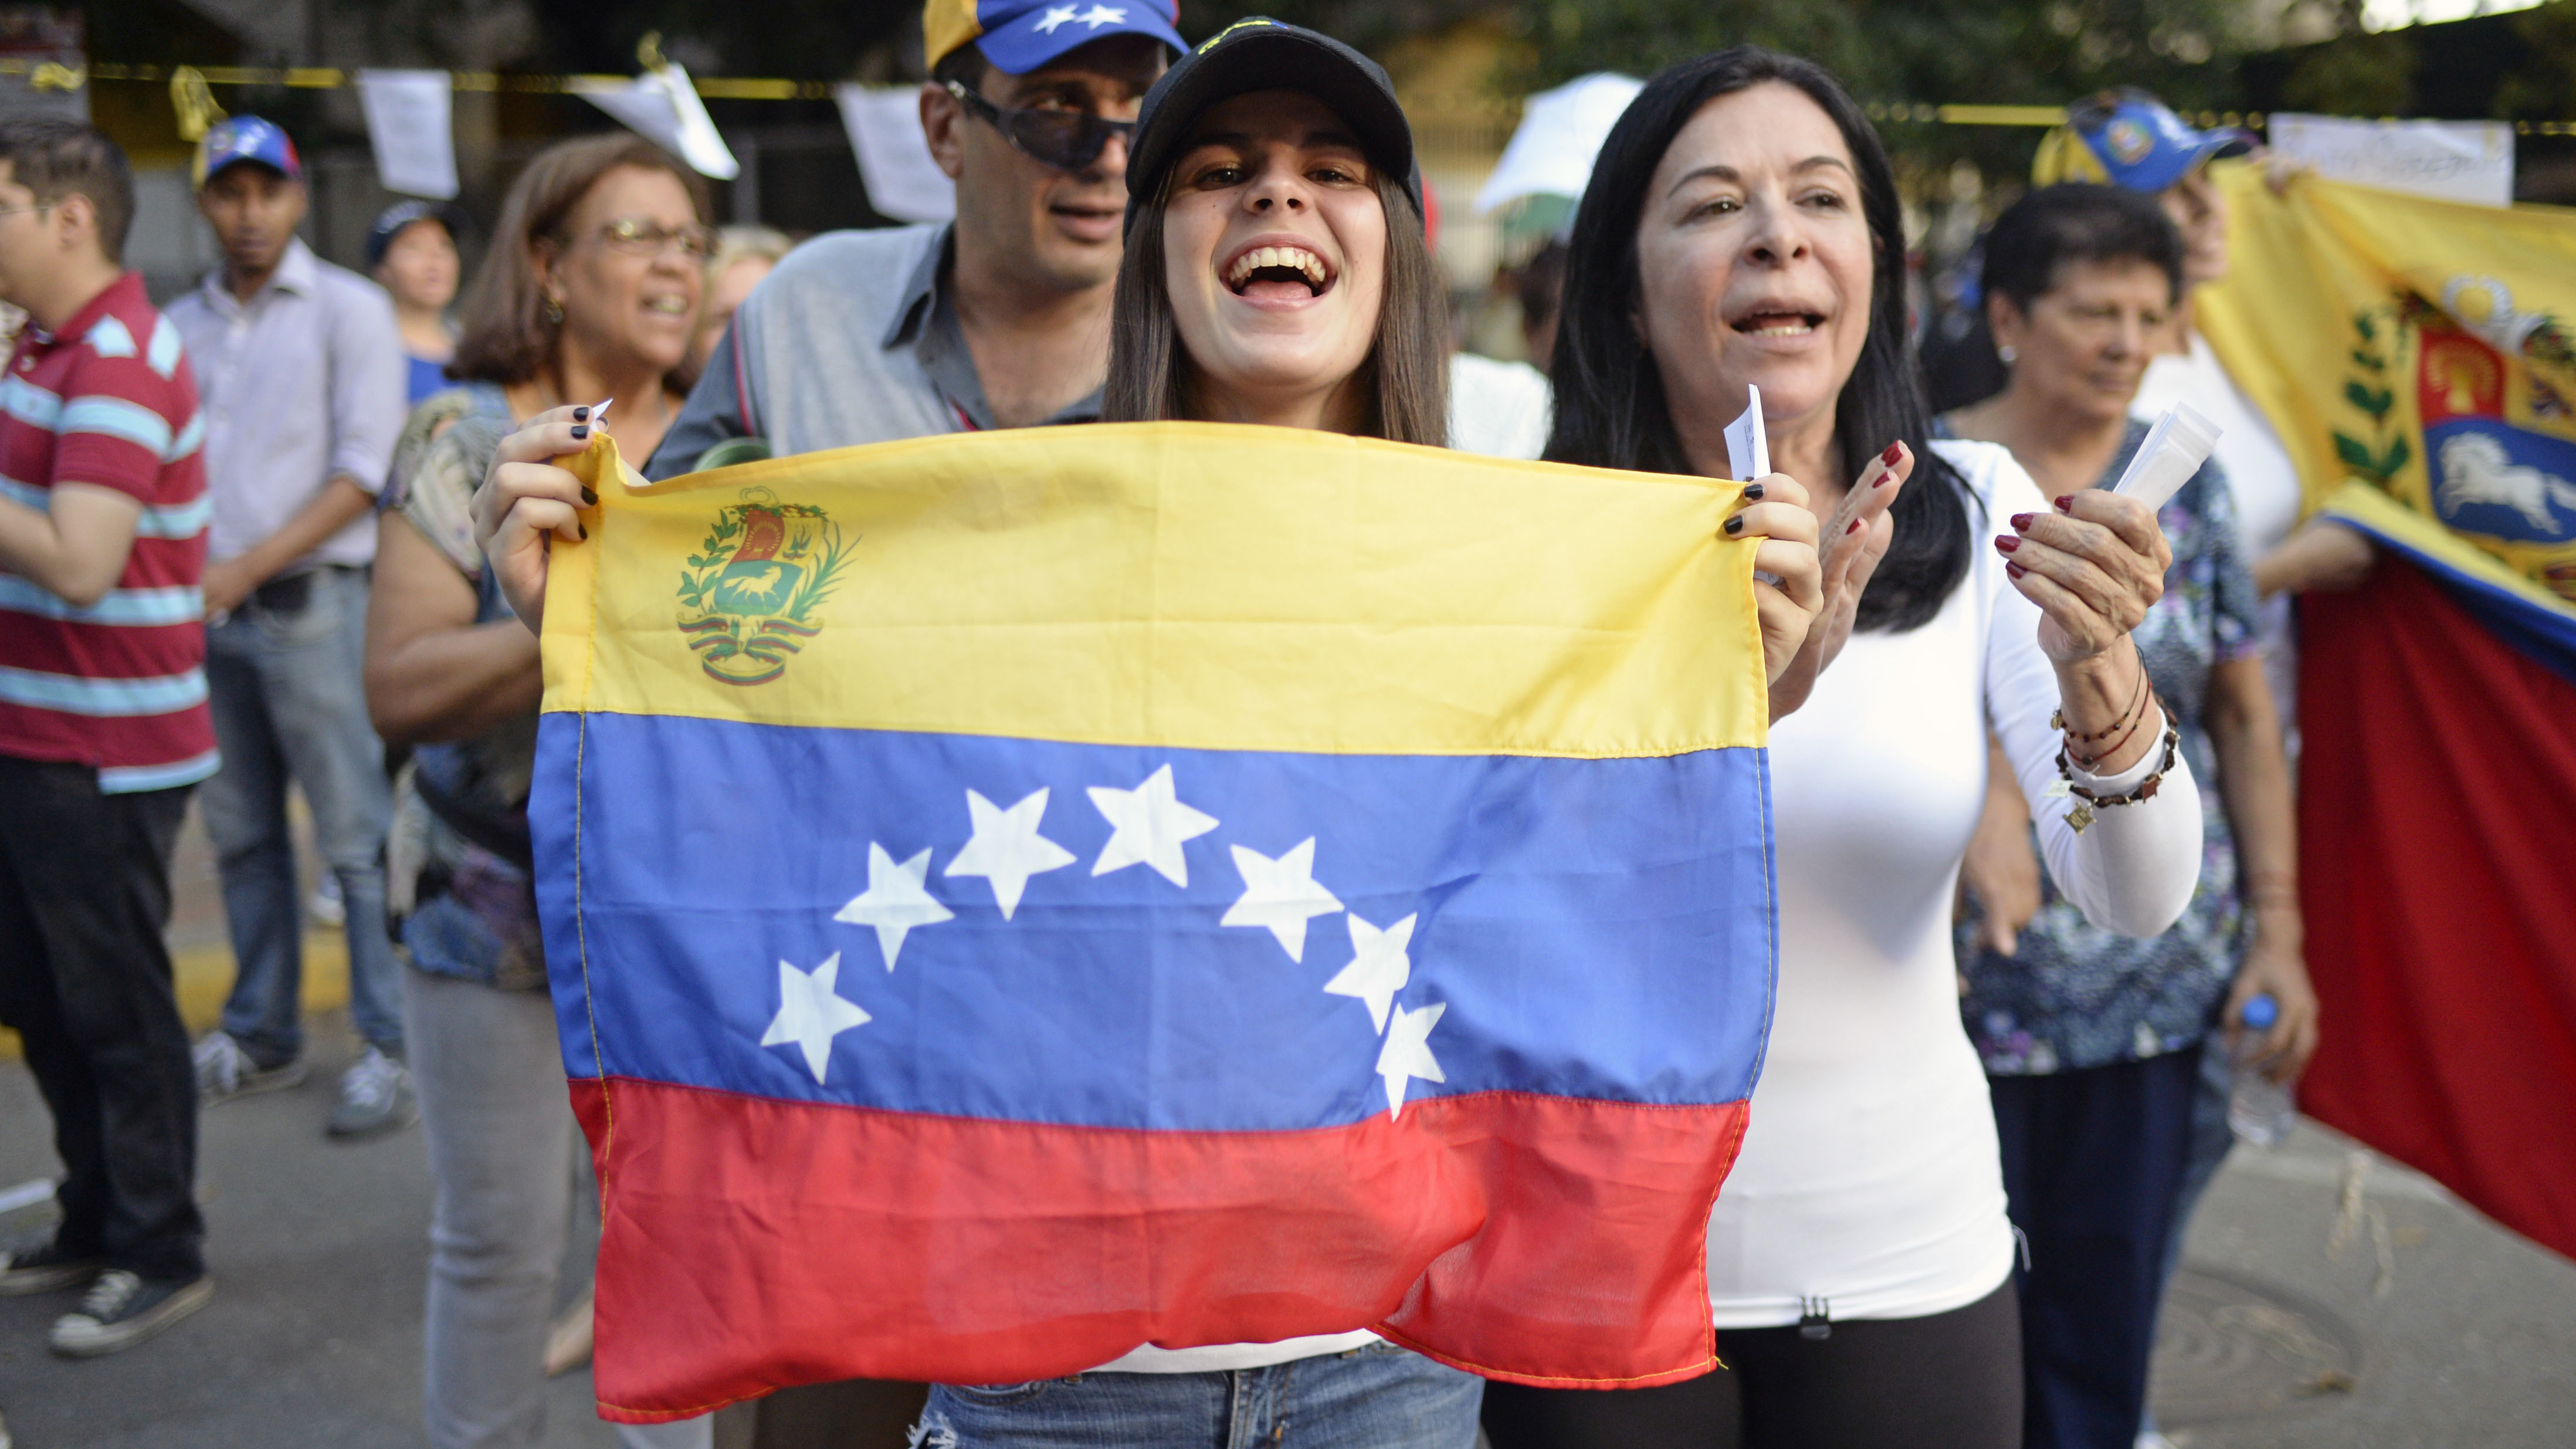 98% of Venezuela referendum voters reject President's proposal